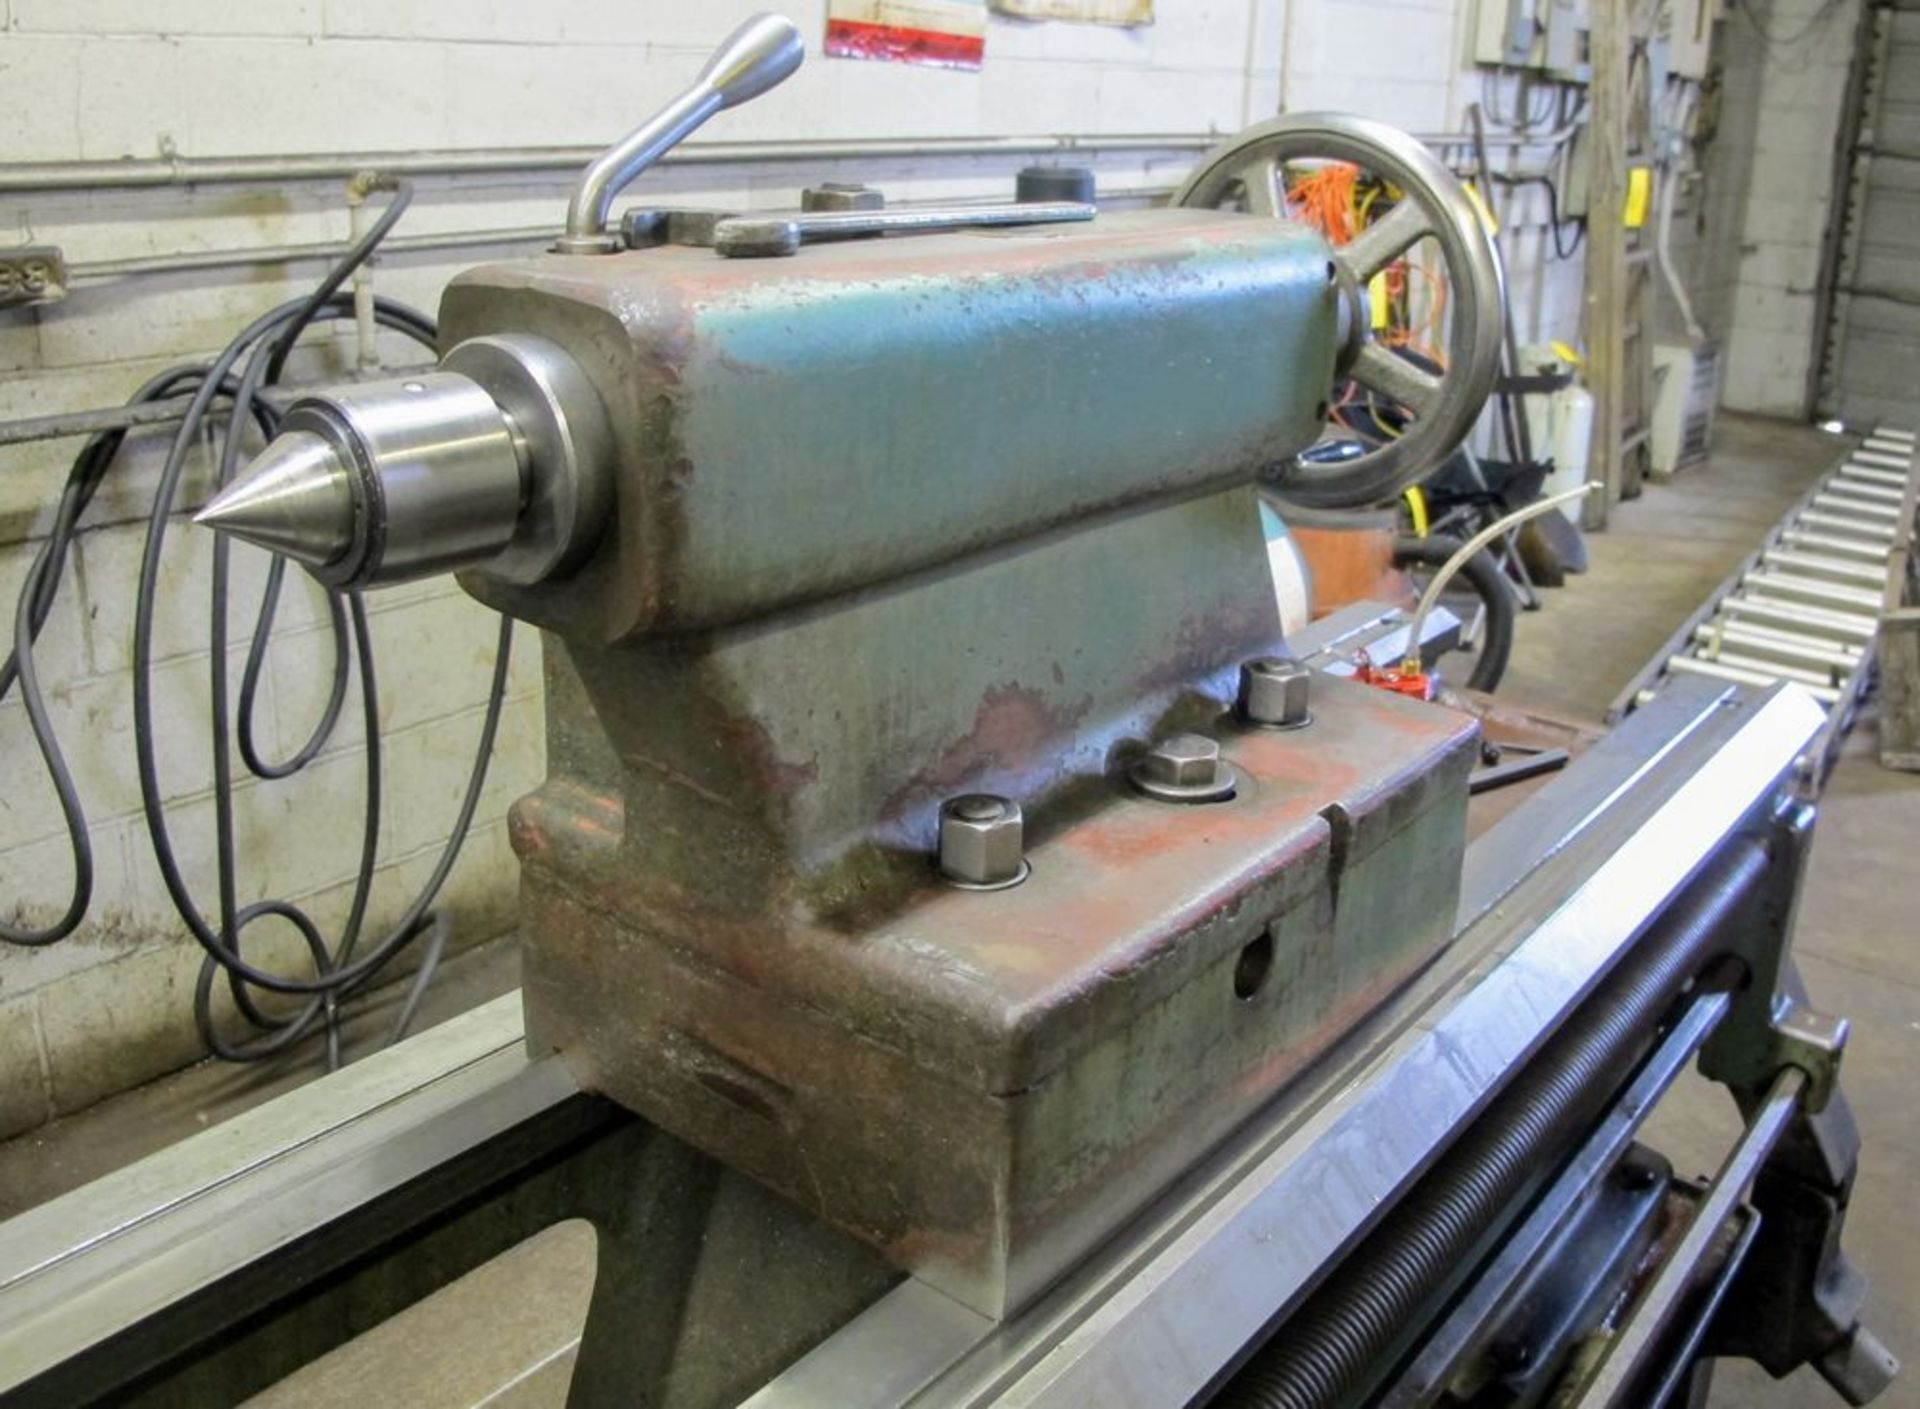 """TOS TRENCIN SN71B LATHE, 28"""" SWING, 7' BED, 3 JAW CHUCK, TAIL STOCK, STEADY REST, QUICK CHANGE - Image 7 of 10"""